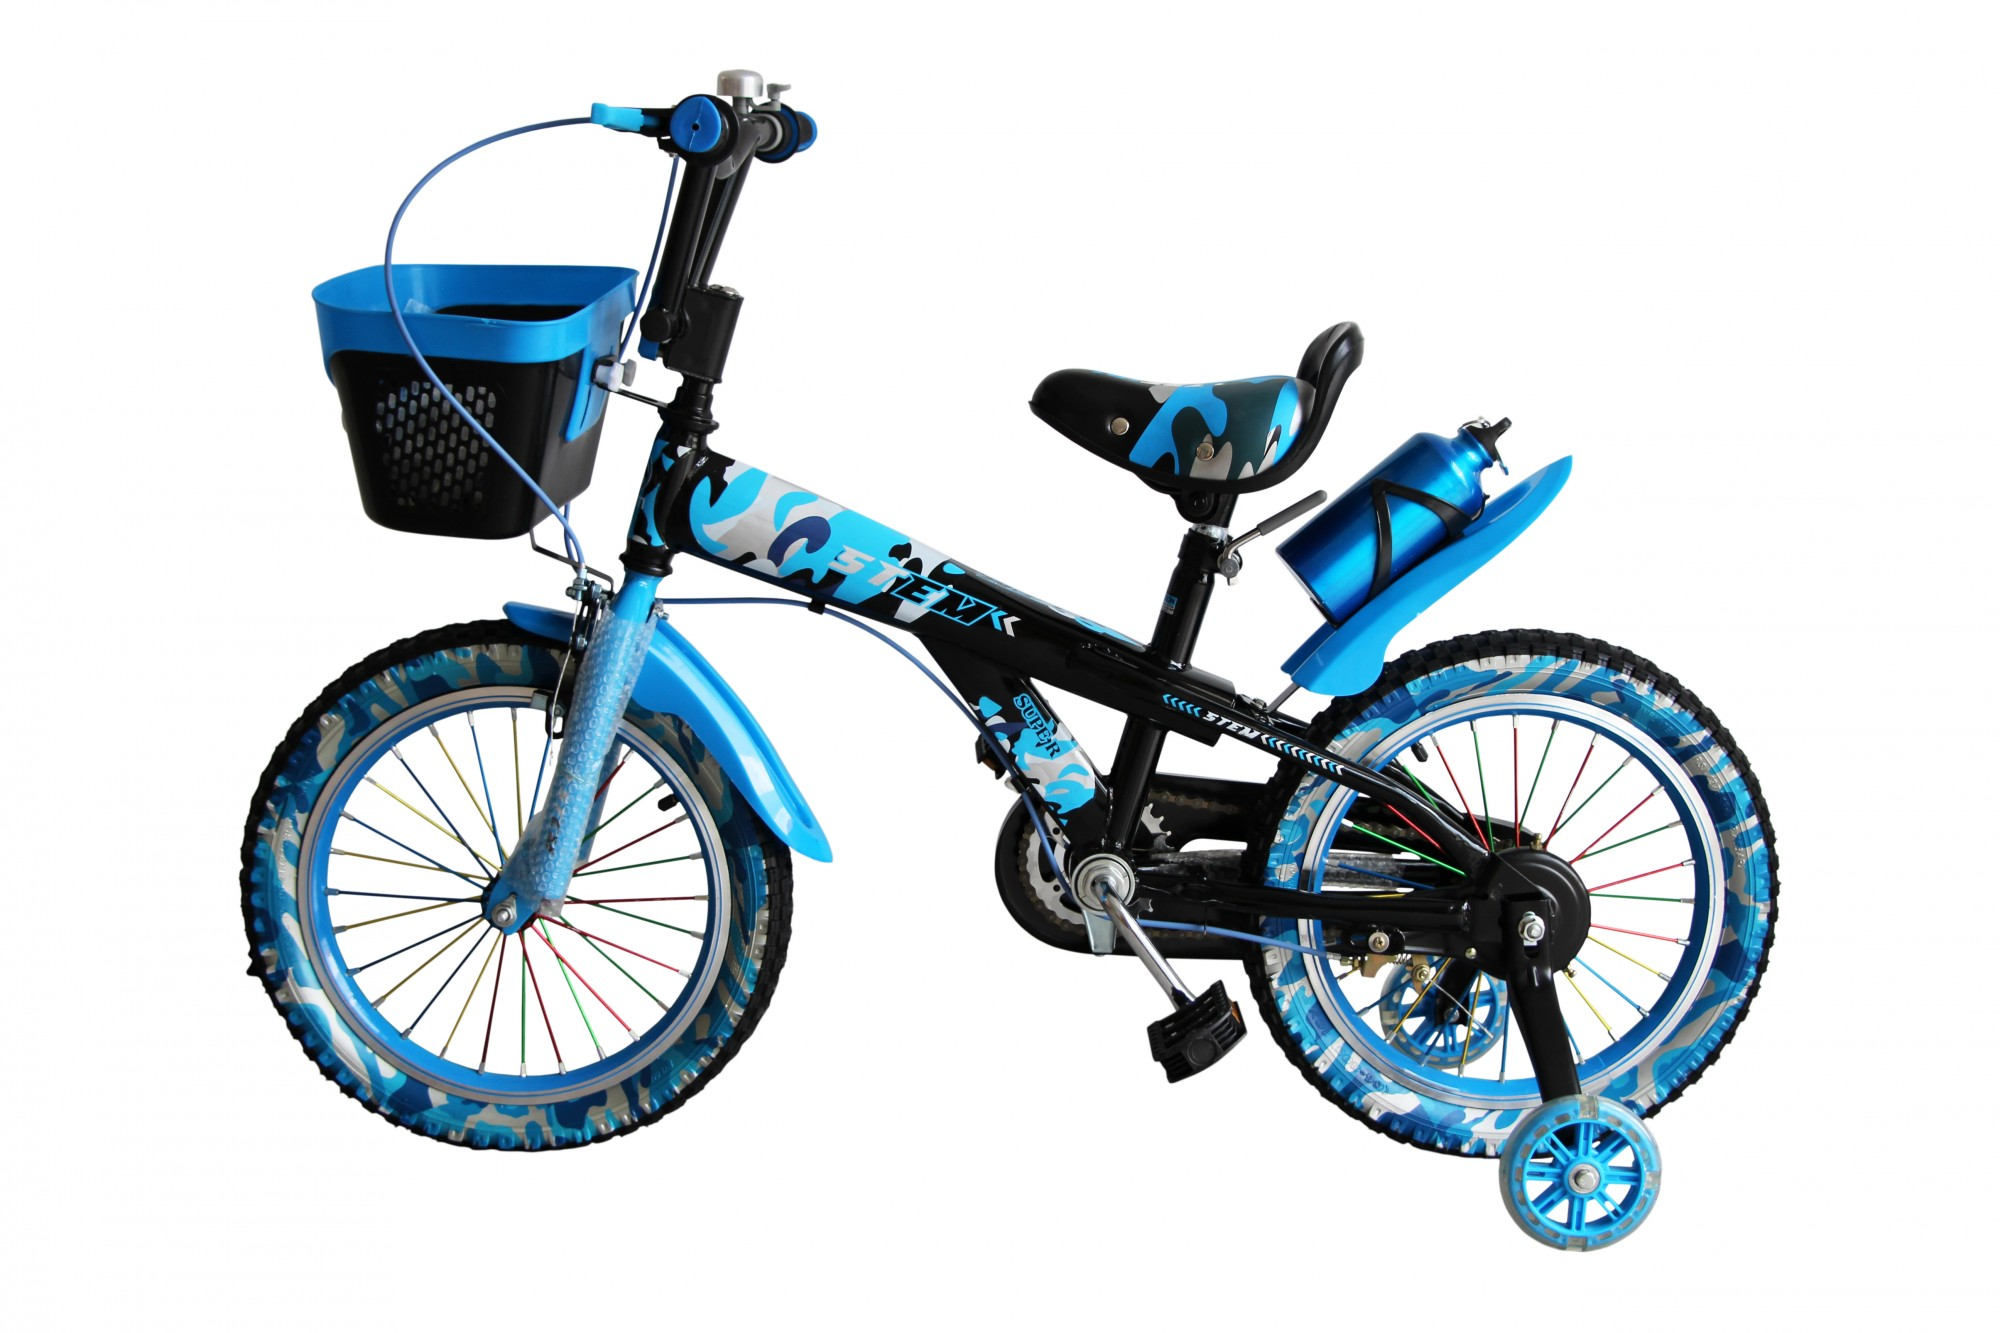 kinderfahrrad 12 16 20 zoll kinder fahrrad spielrad rad m dchen jungen stem bike ebay. Black Bedroom Furniture Sets. Home Design Ideas